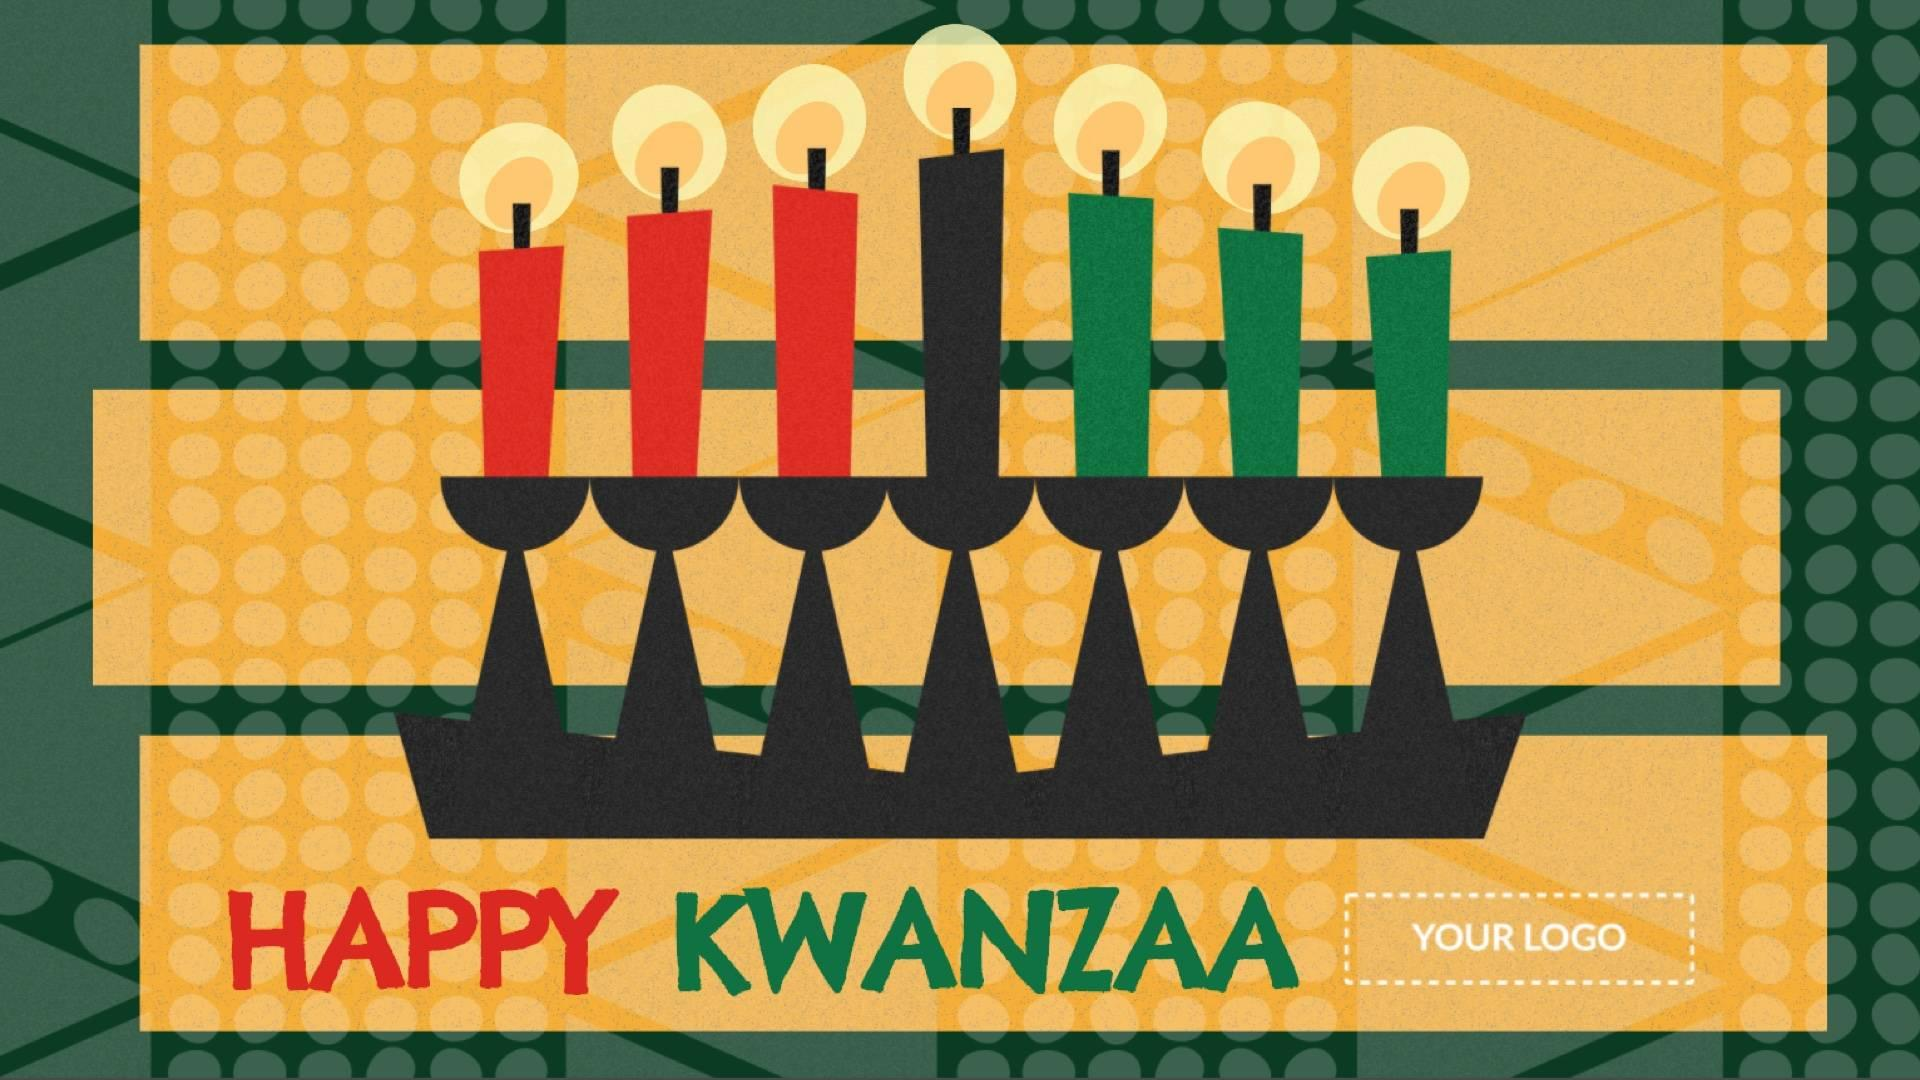 Holiday Happy Kwanzaa Digital Signage Template